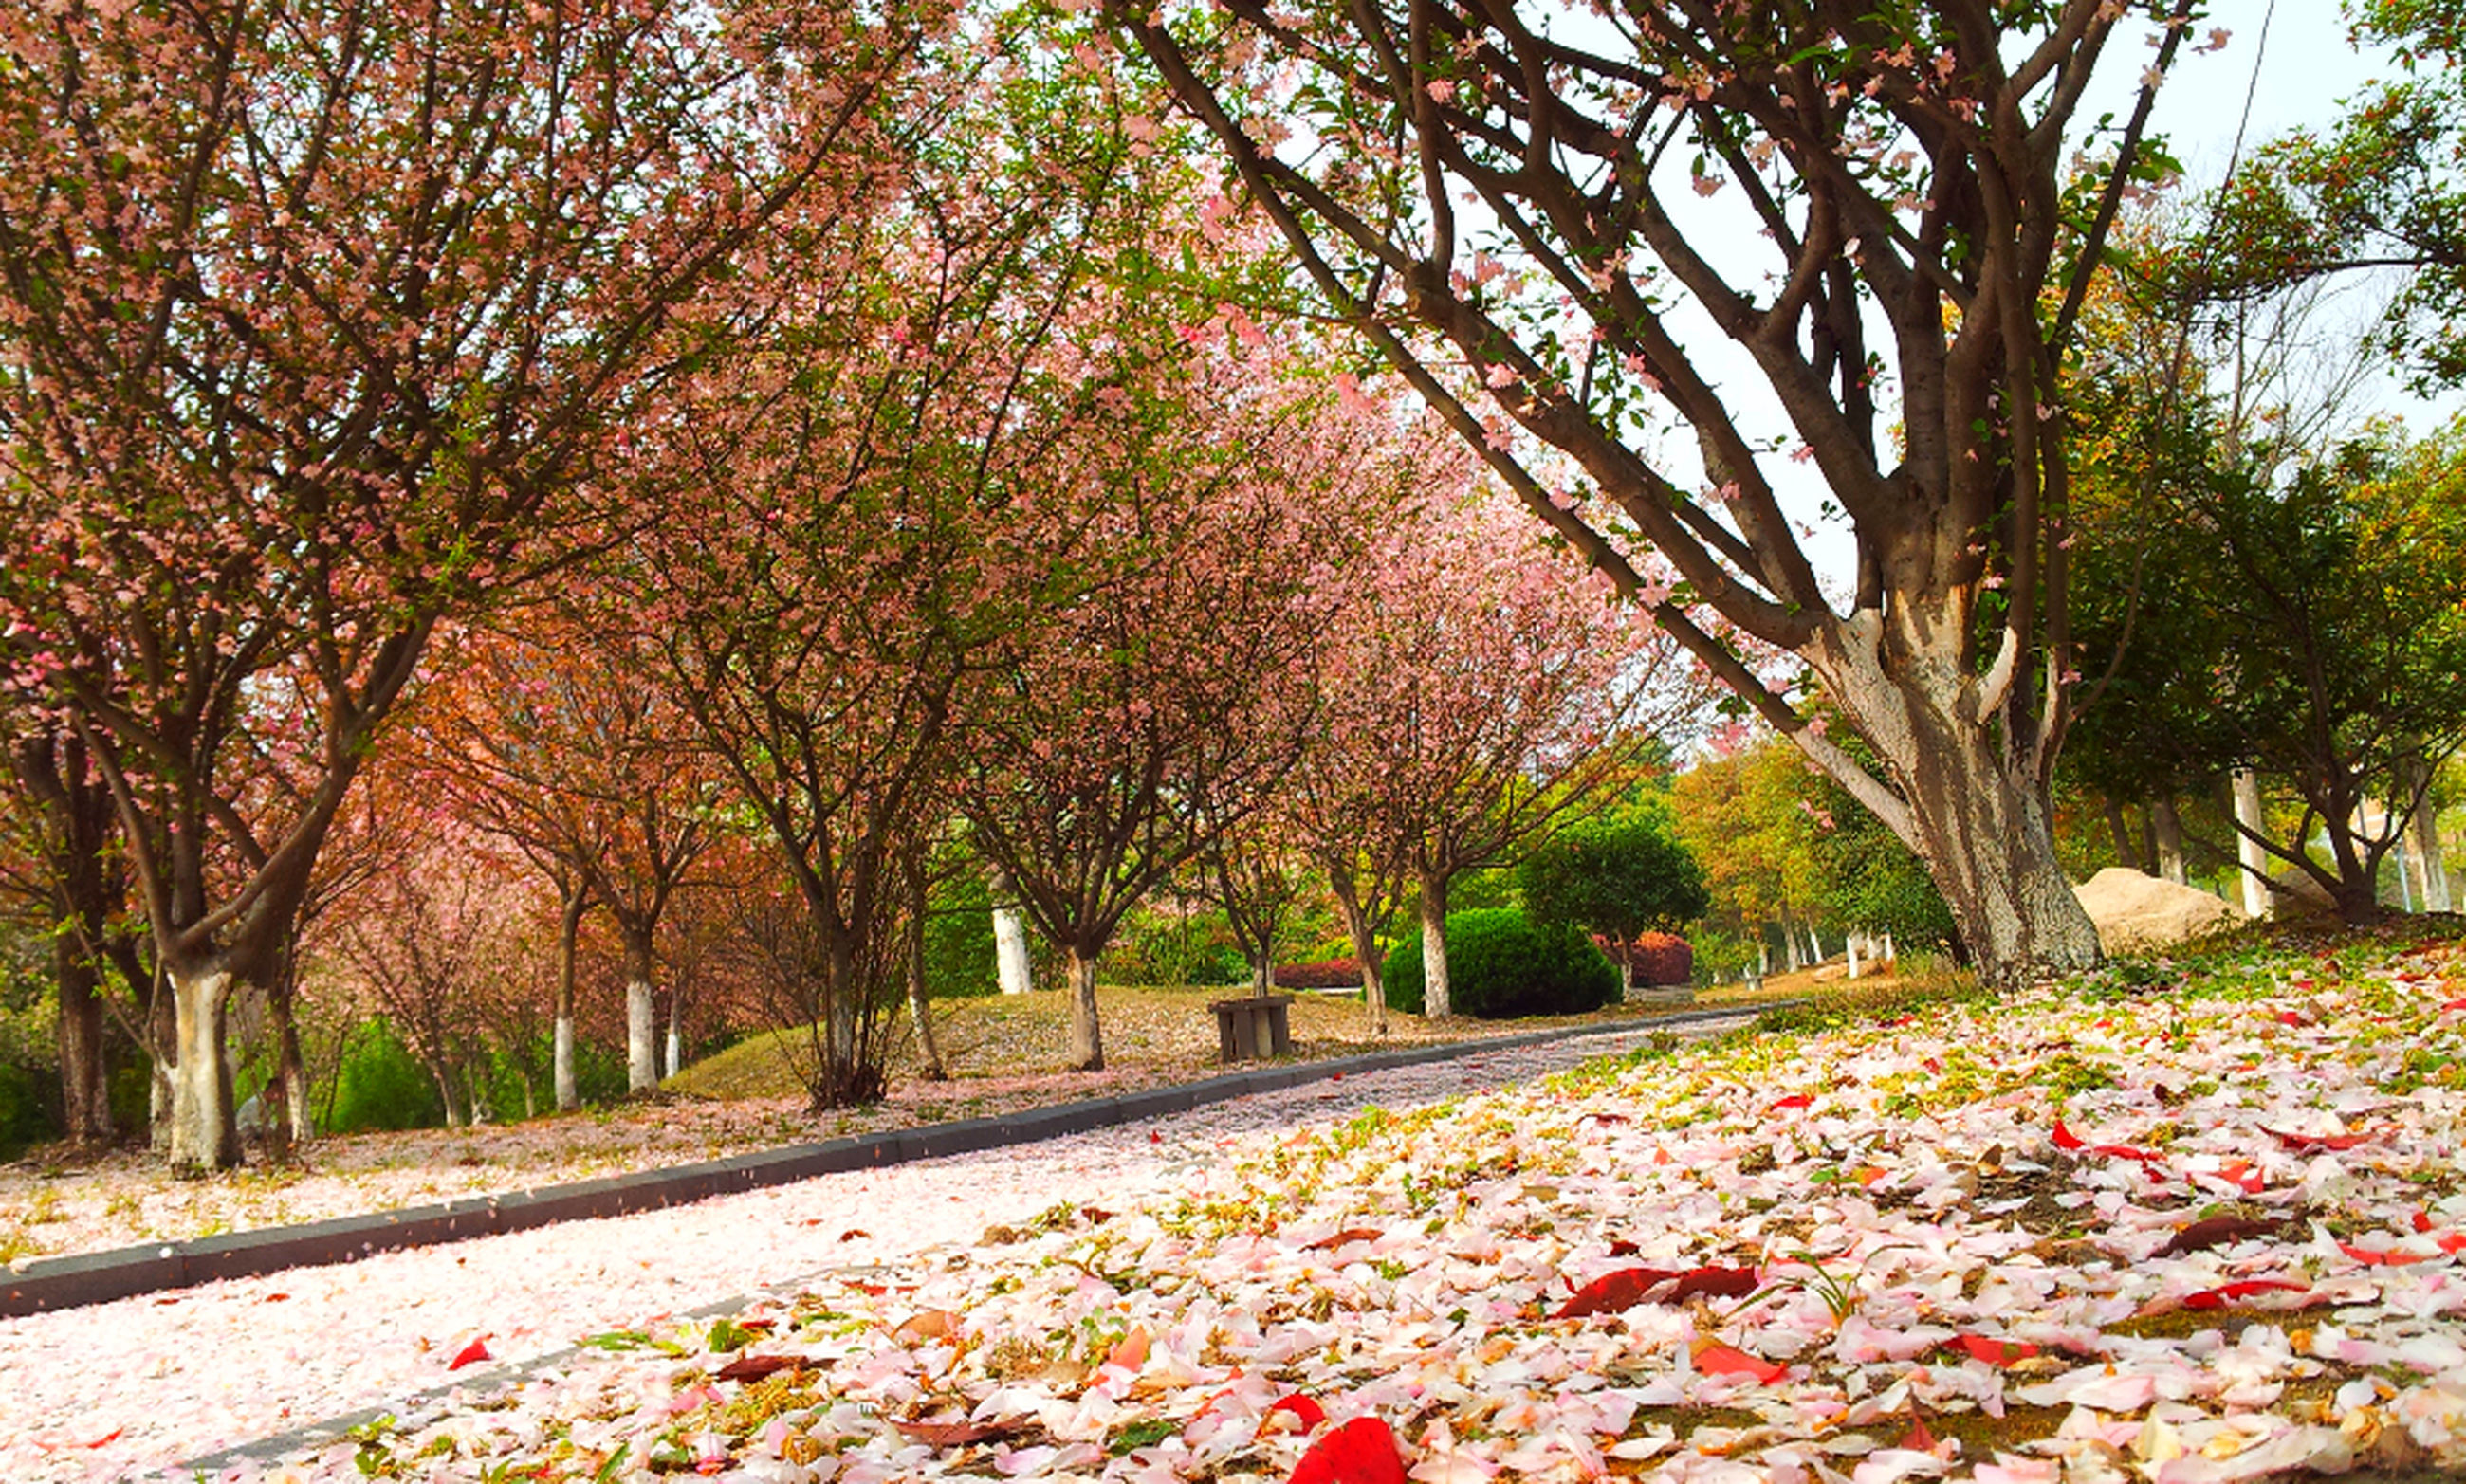 autumn, tree, change, season, leaf, growth, nature, tranquility, beauty in nature, fallen, park - man made space, branch, flower, day, tranquil scene, leaves, outdoors, red, scenics, footpath